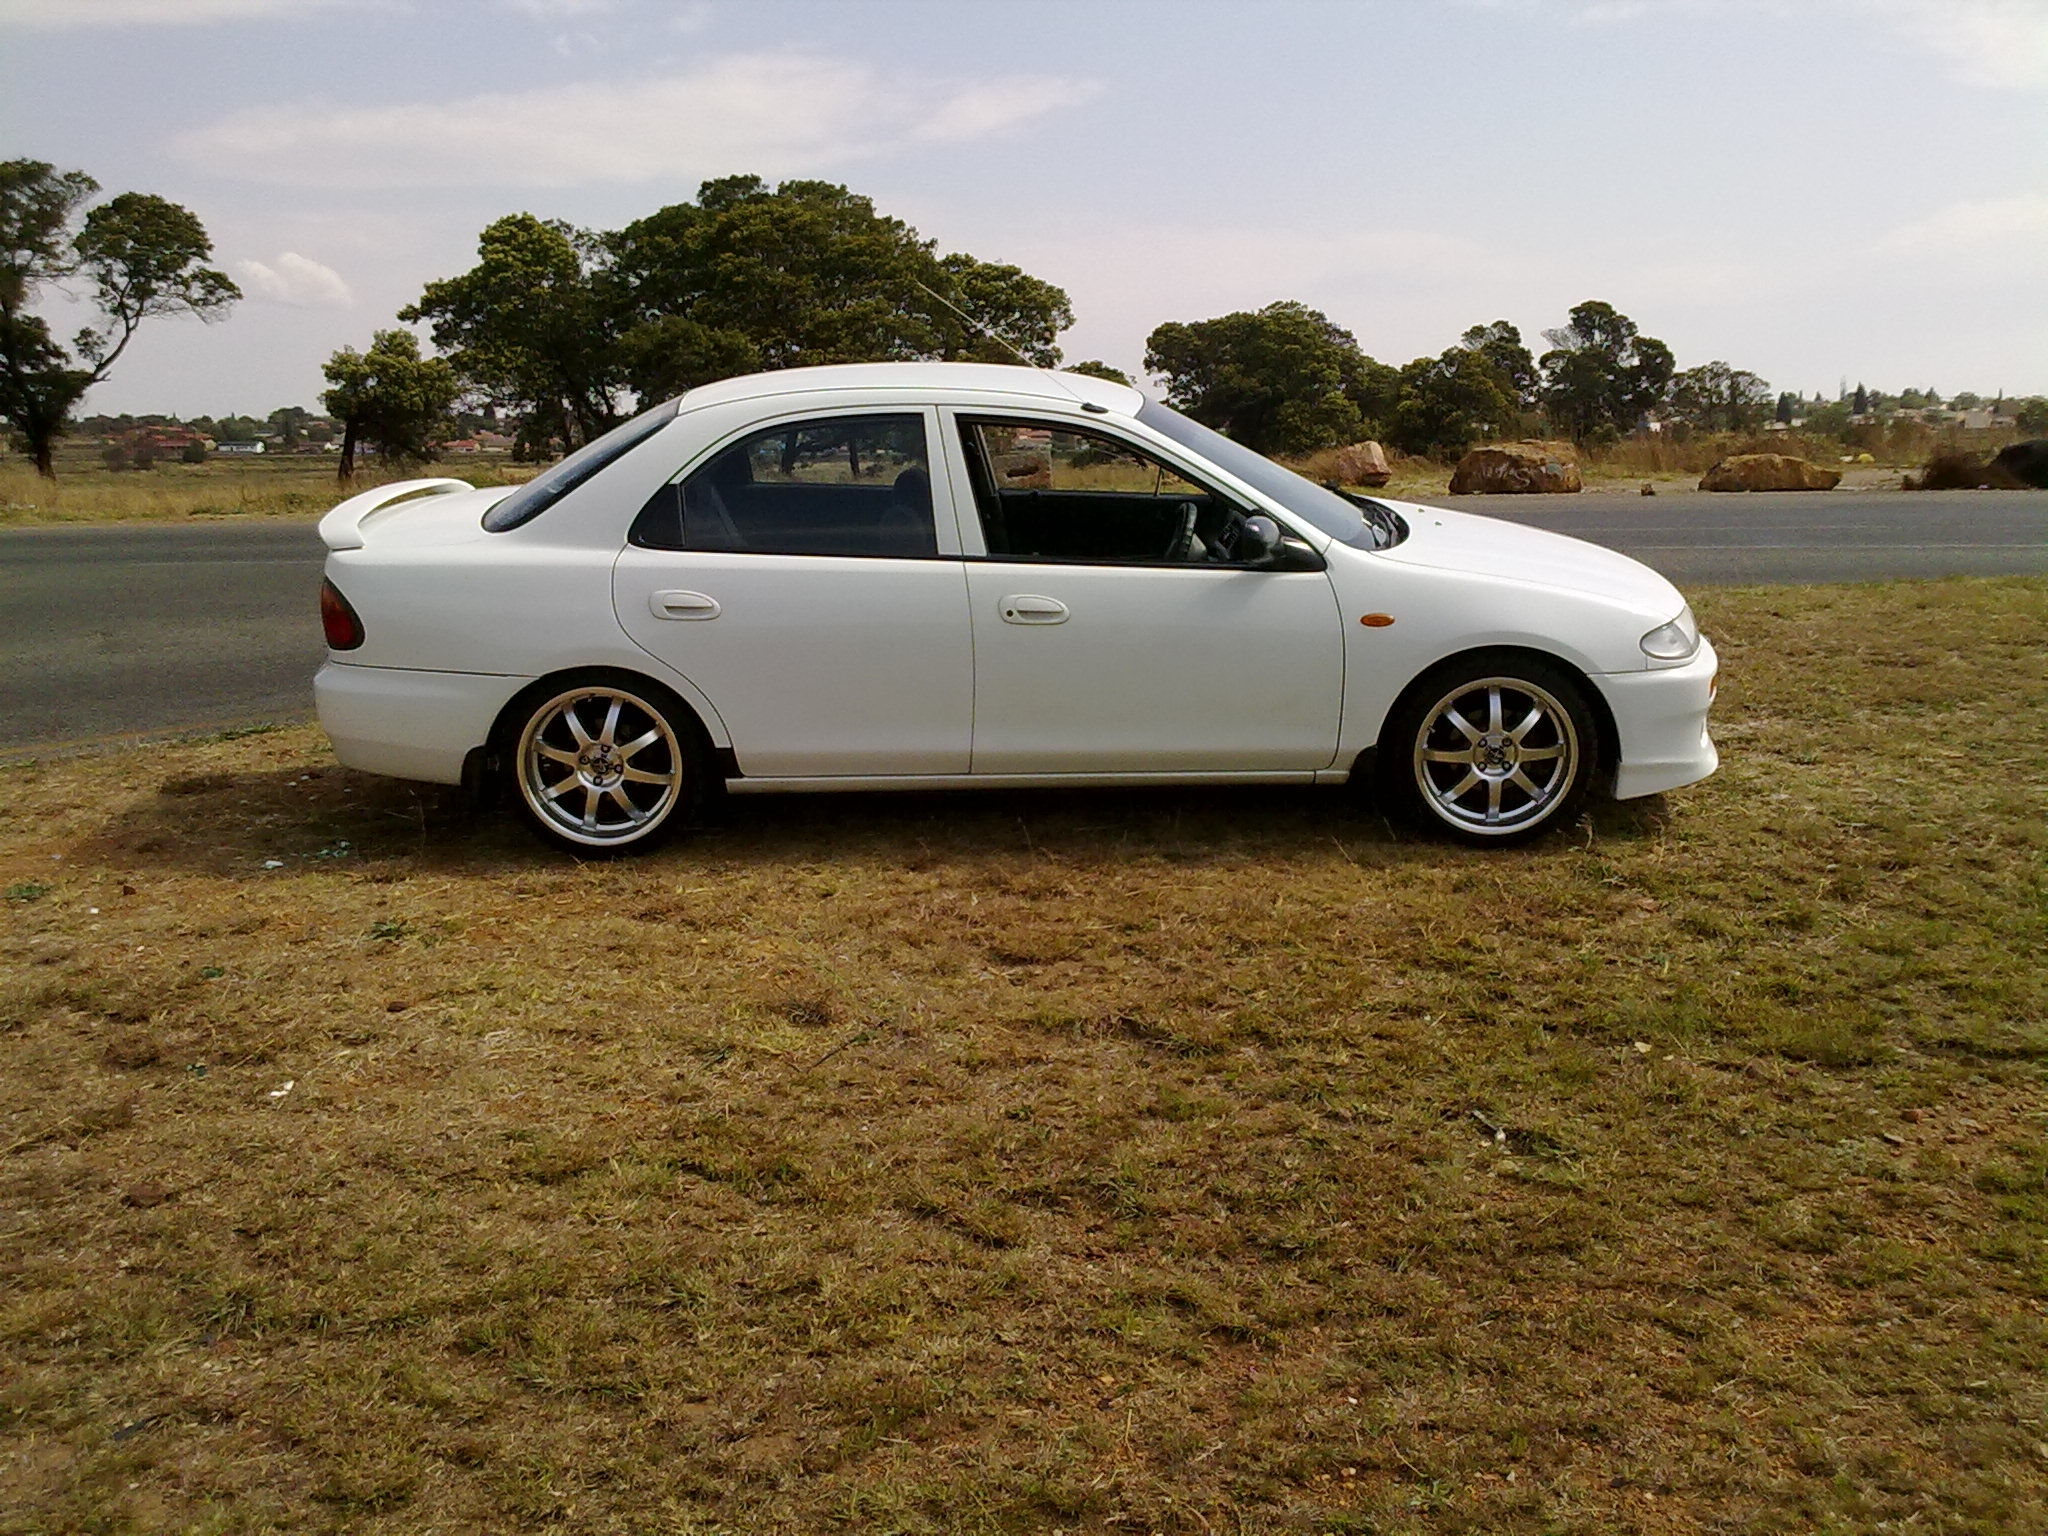 Reshen1s profile in gauteng cardomain another reshen1 1996 mazda protege post 14892447 publicscrutiny Image collections